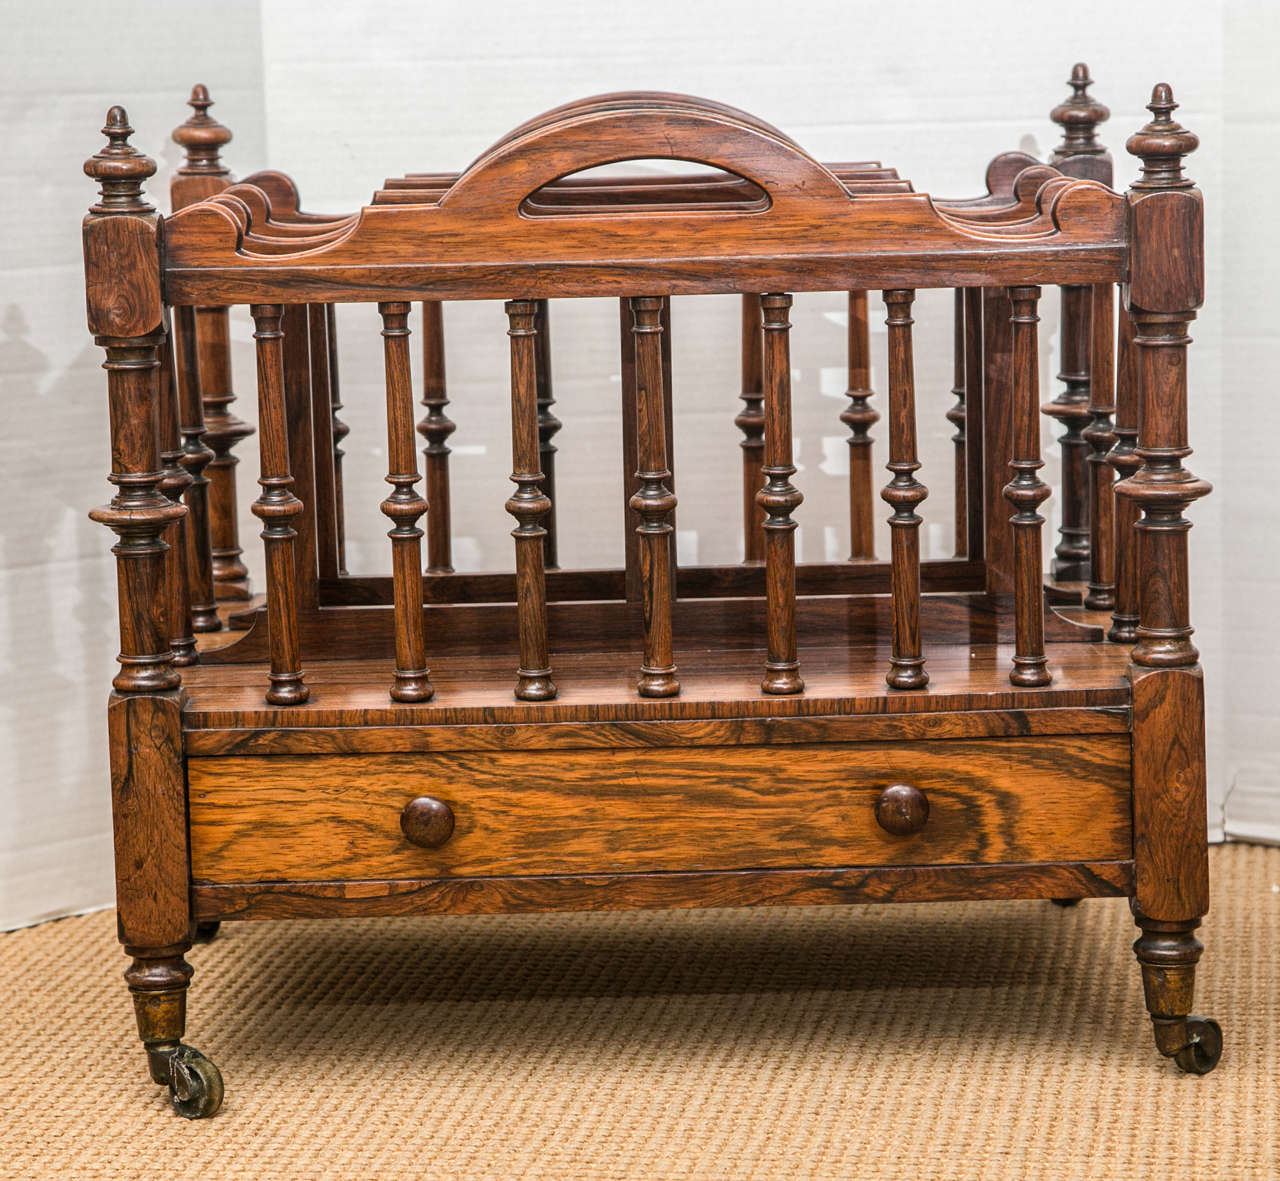 A handsome three-section Canterbury with four pierced handles, turned columns, a lower drawer, and original casters.